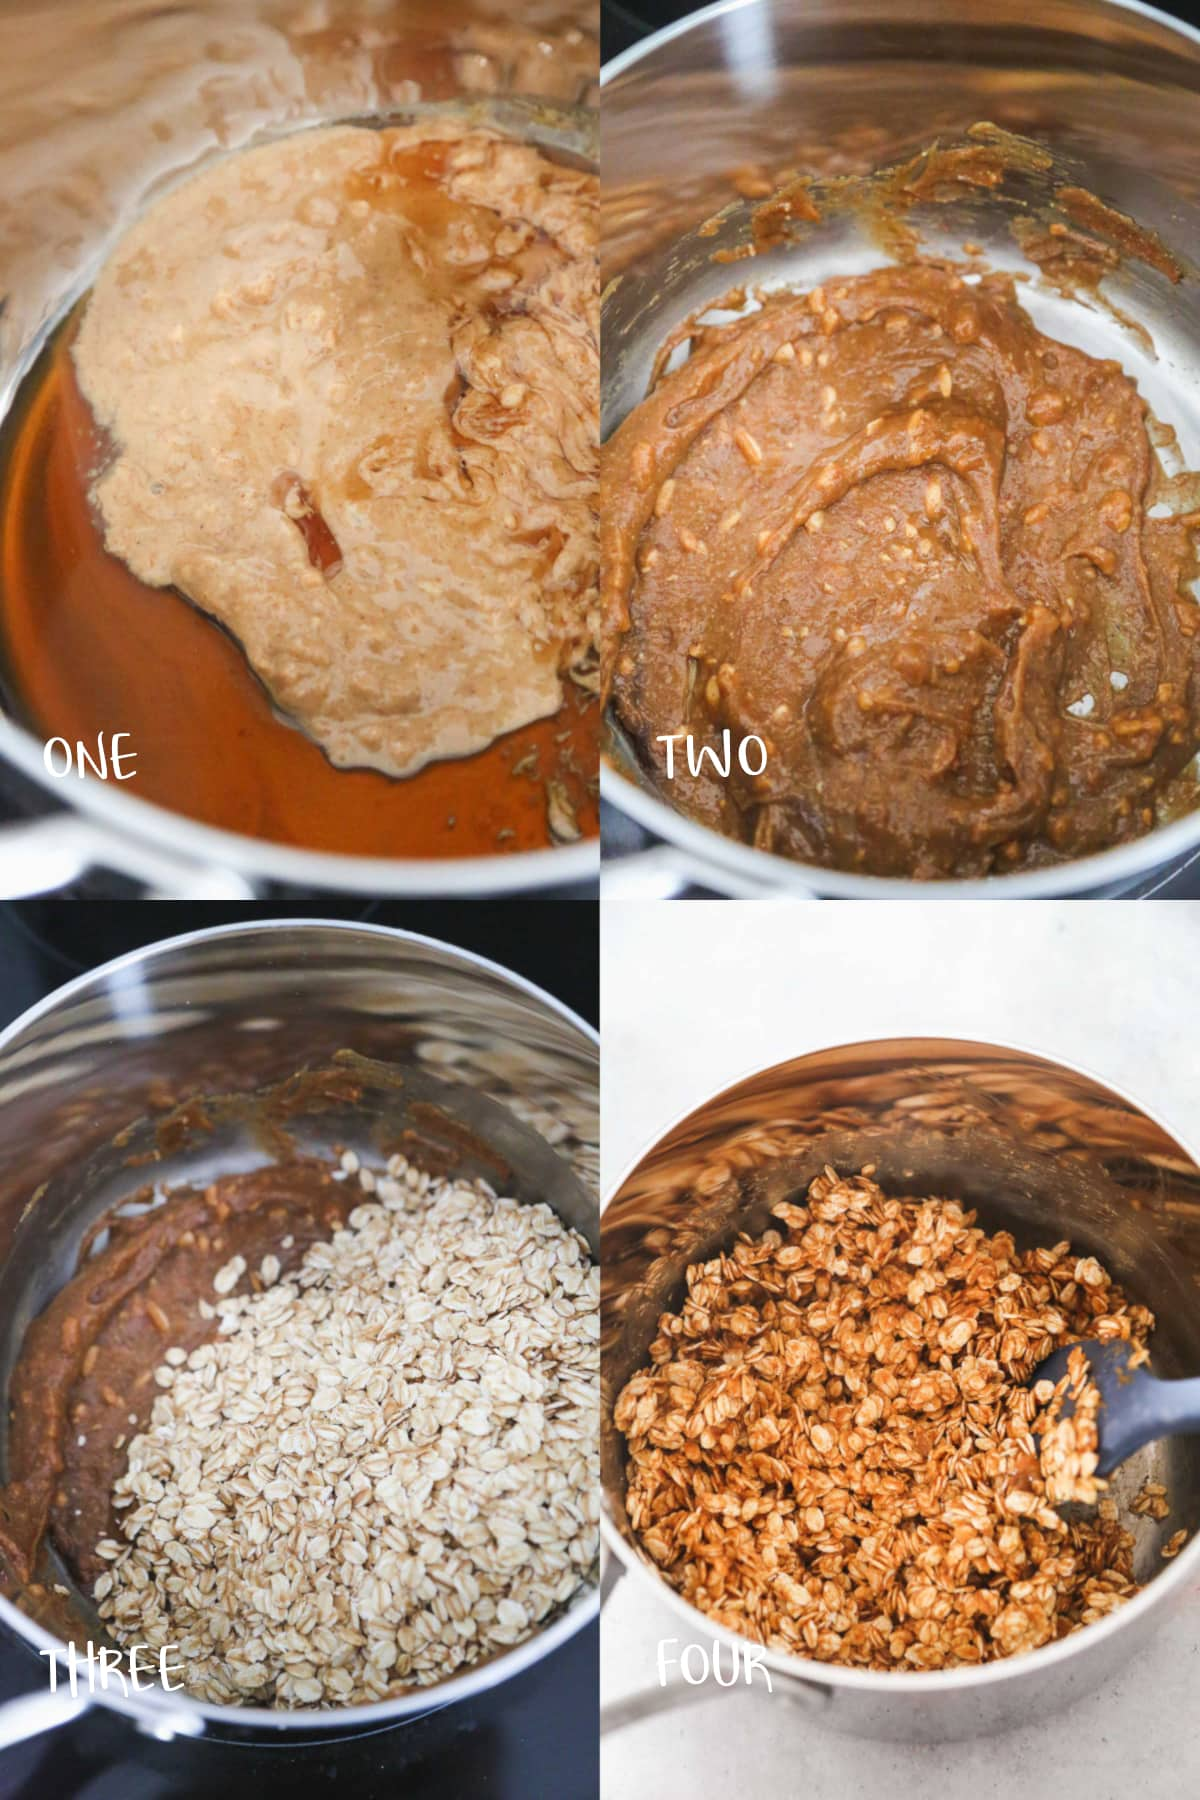 Step by step peanut butter granola